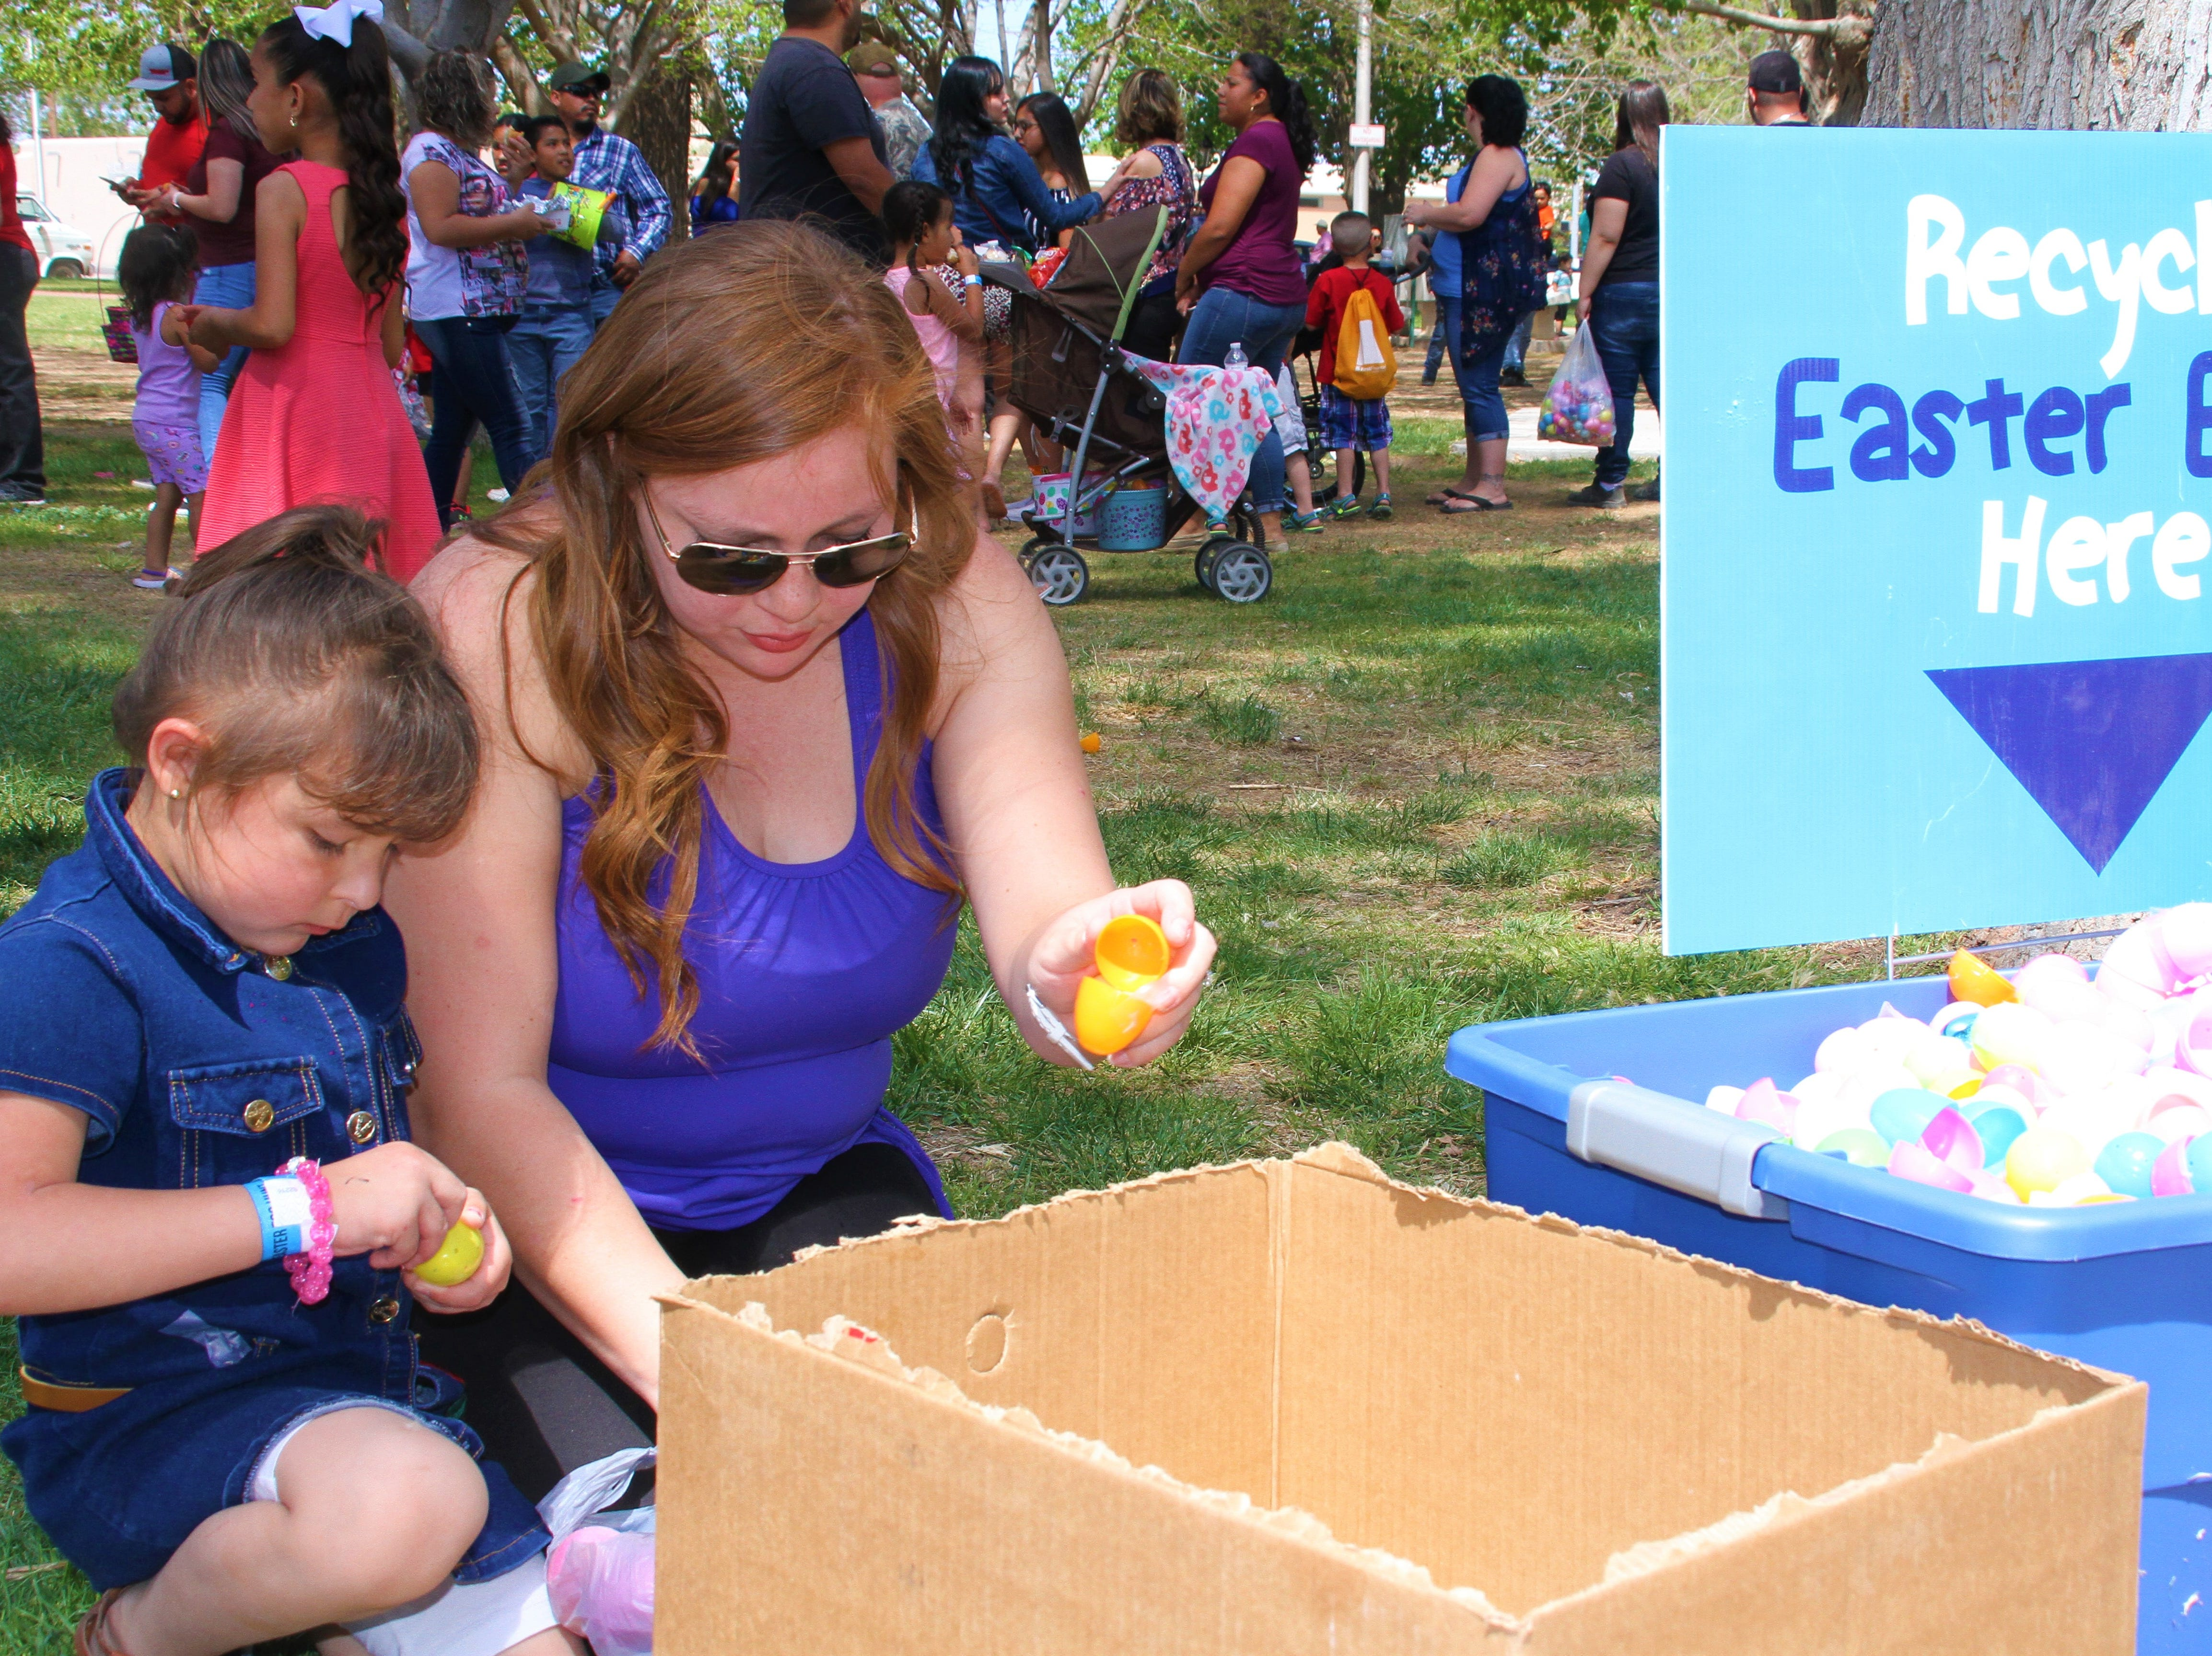 From left, Carly Camerena and mom, Adriana Munoz taking out candy eggs to then recycle them later.